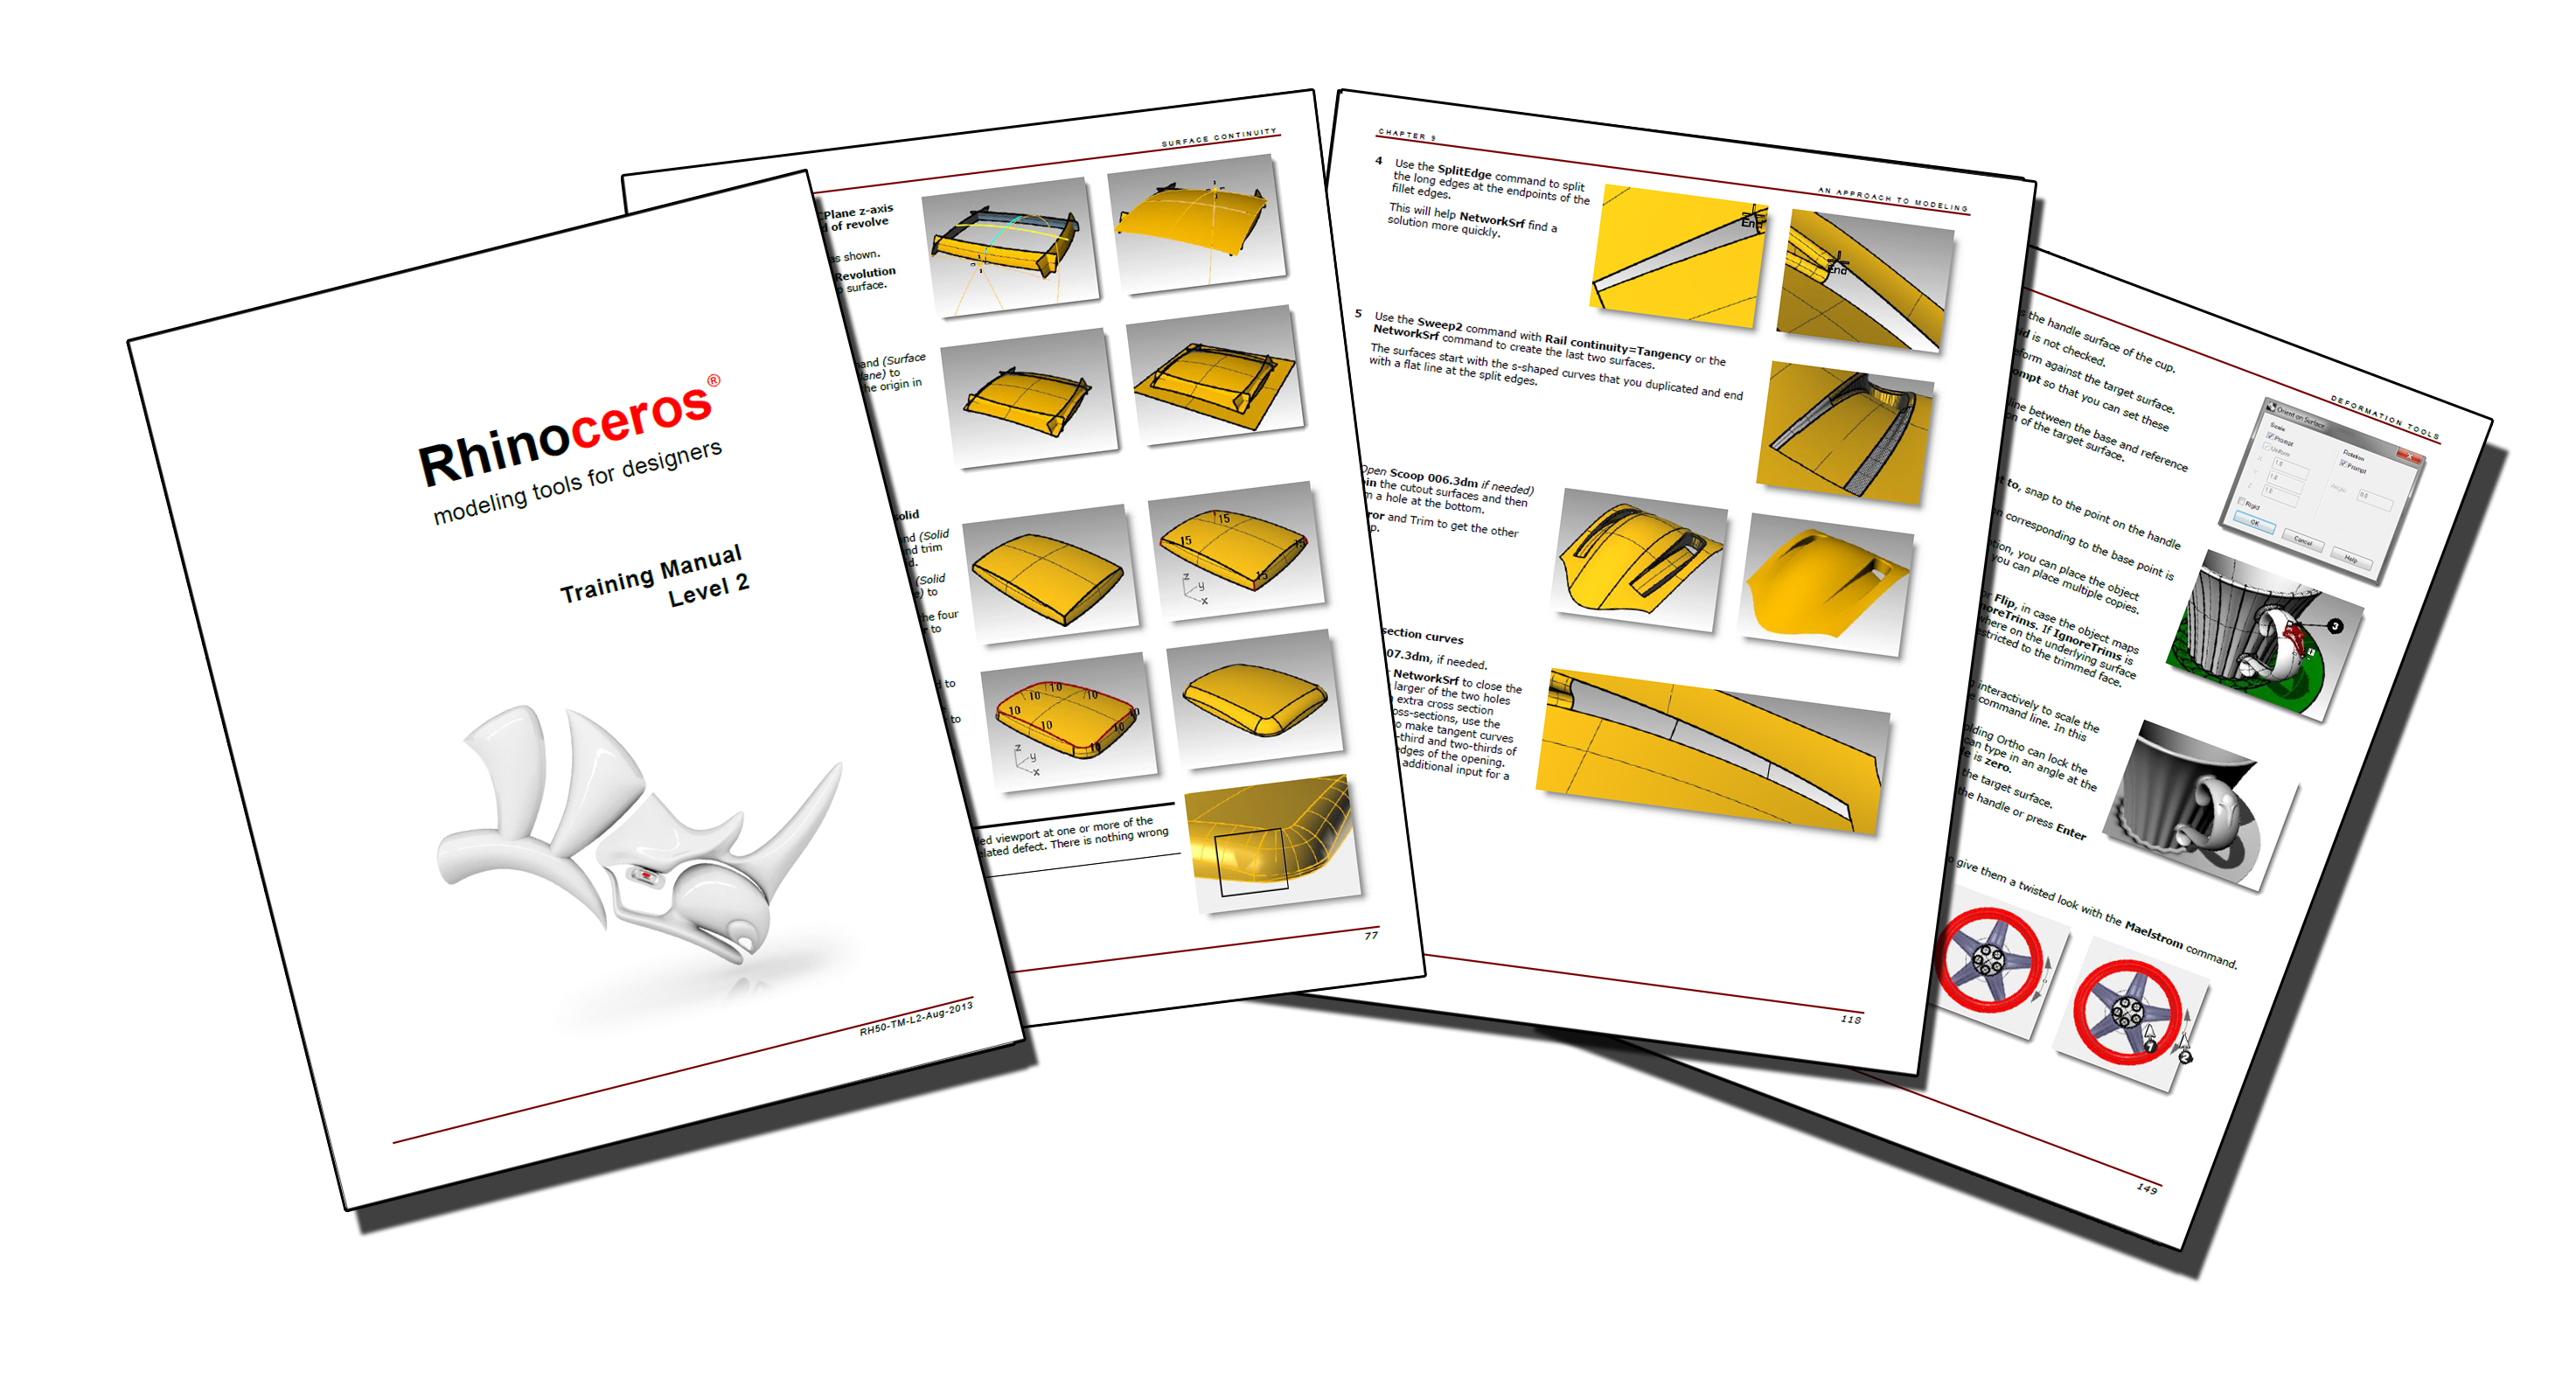 sketchup 8 user guide tutorials browse manual guides u2022 rh trufflefries co